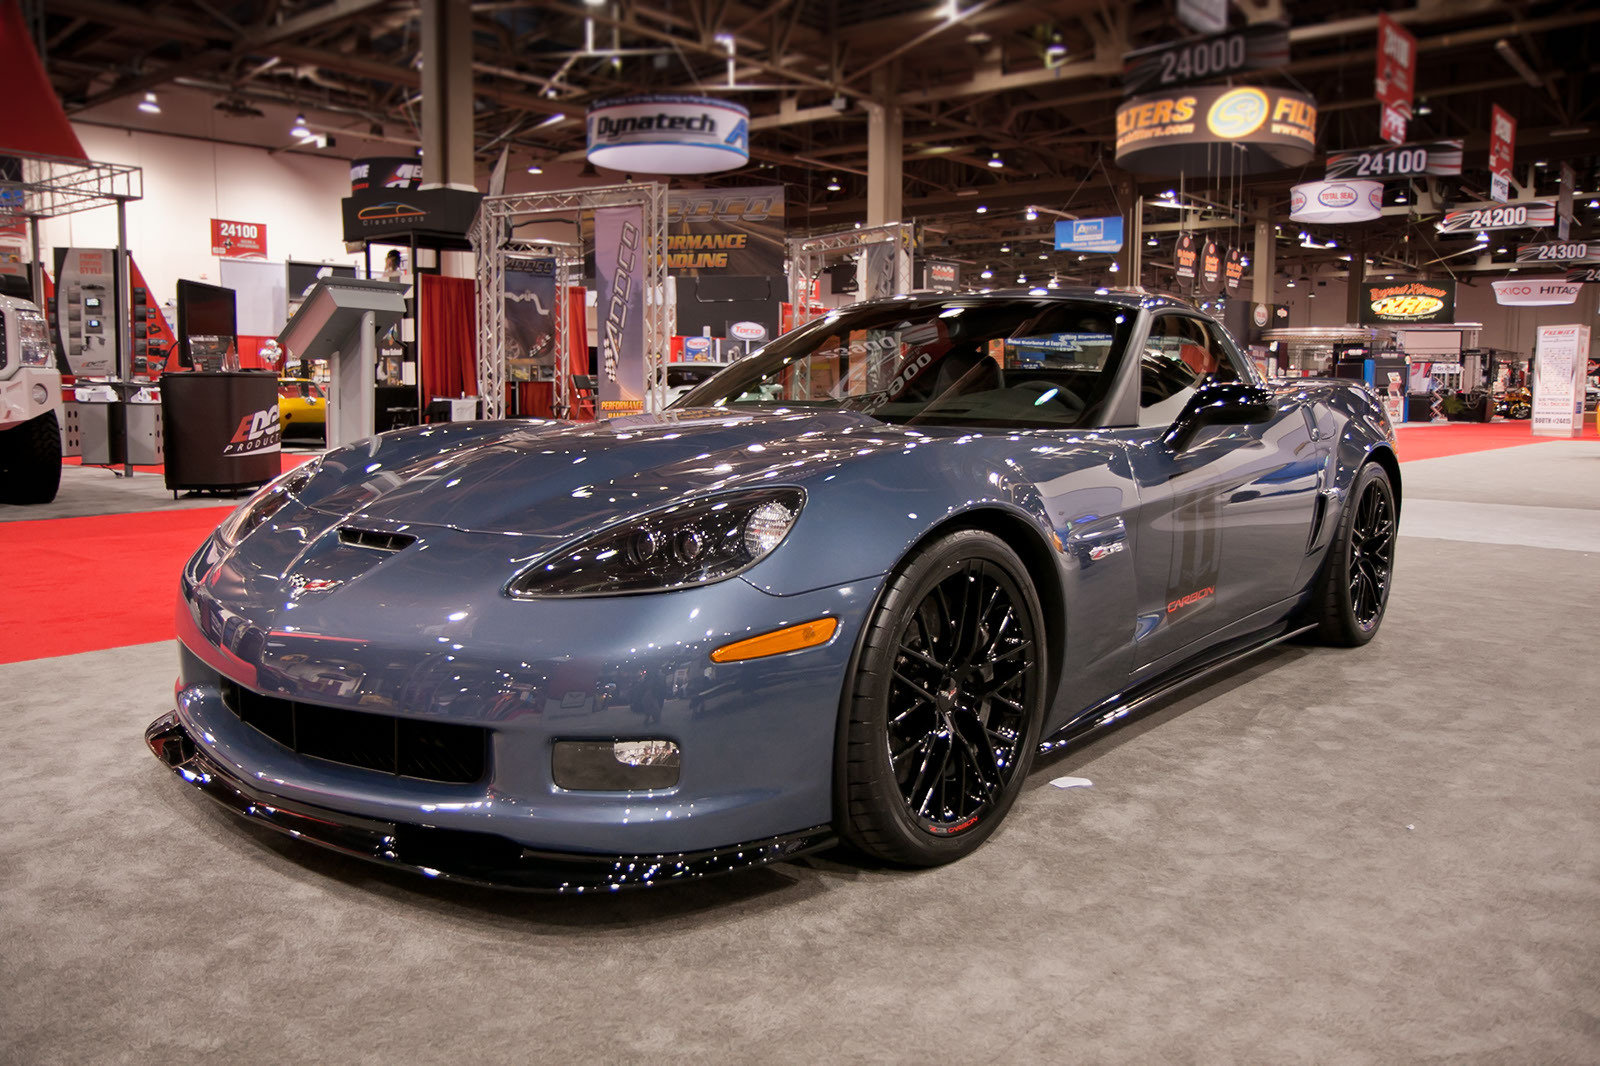 2011 chevrolet corvette z06 carbon limited edition picture 381270 car review top speed. Black Bedroom Furniture Sets. Home Design Ideas